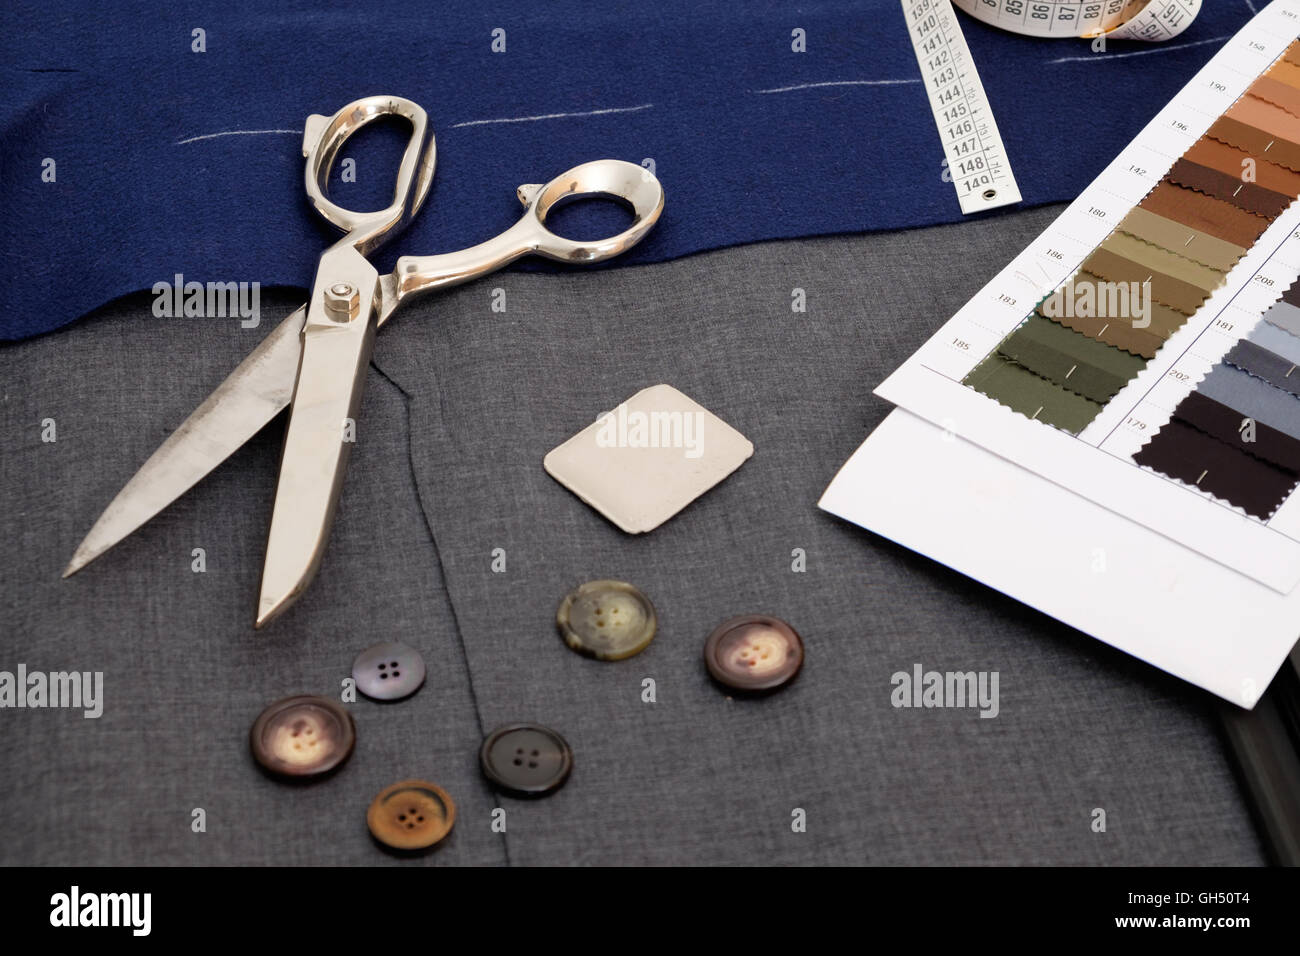 Tailor tools isolated on textile background - Stock Image